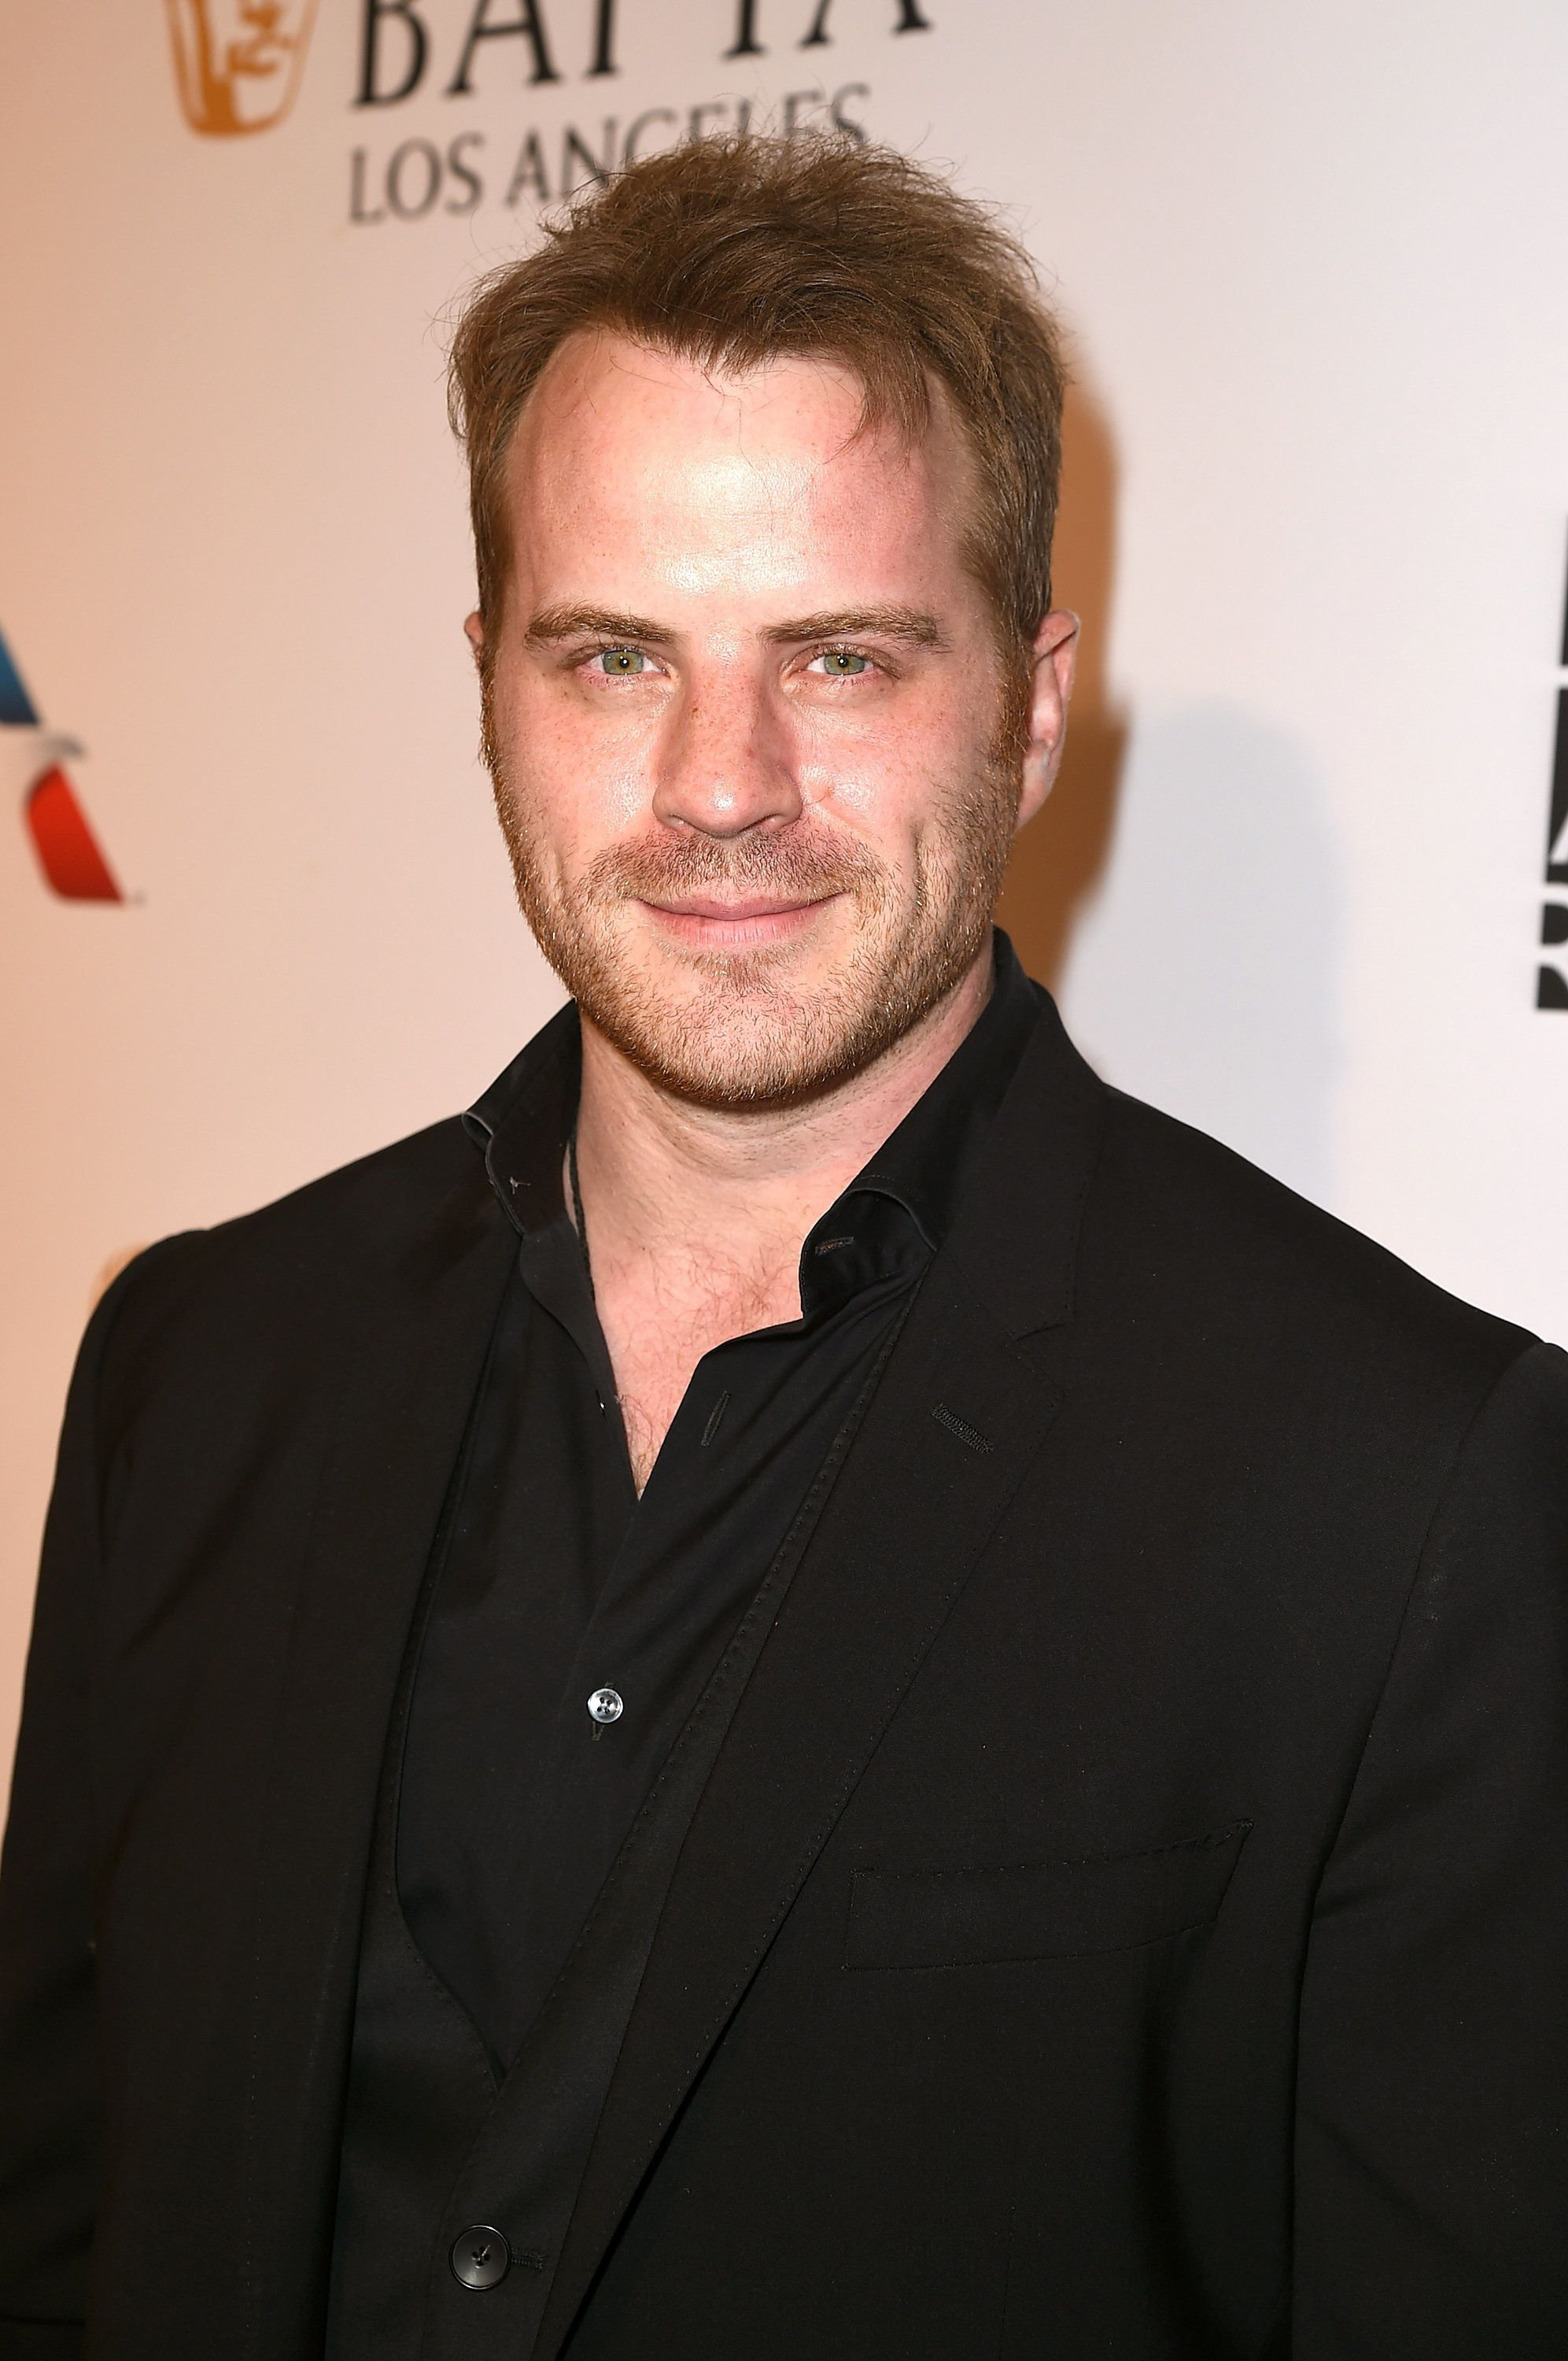 COMEBACK: 'EastEnders' Gets Injection Of Star Power With Return Of Rob Kazinsky After Huge Hollywood